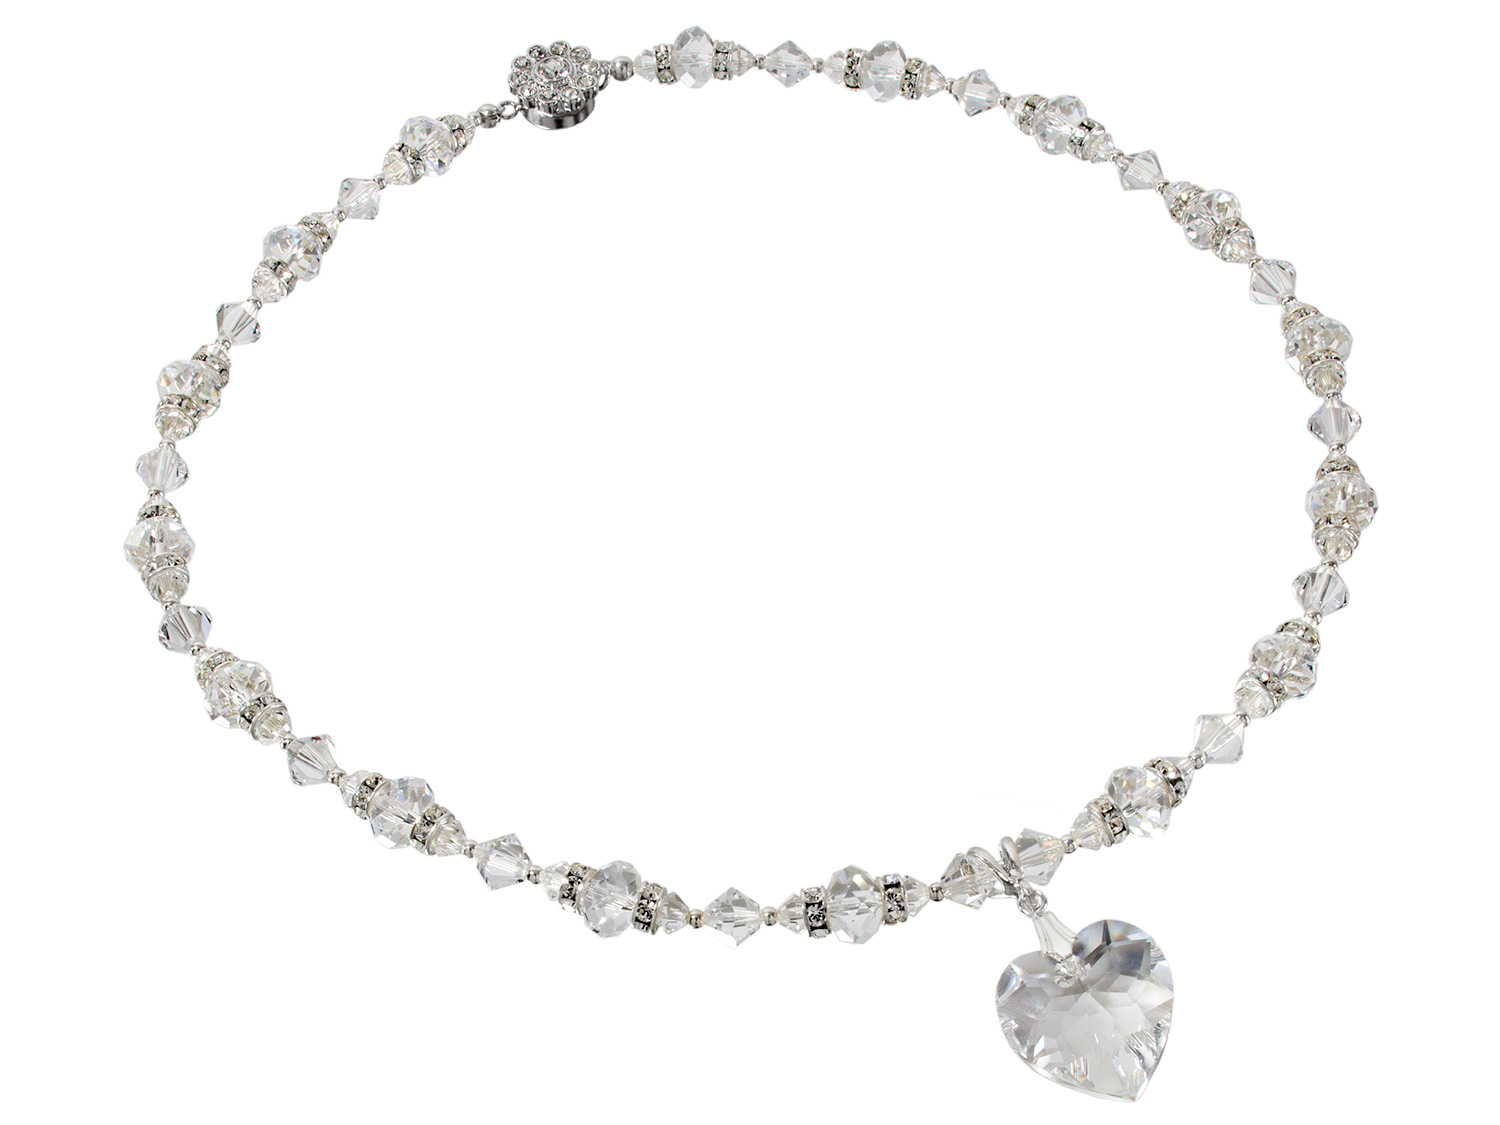 Crystal Romance Necklace